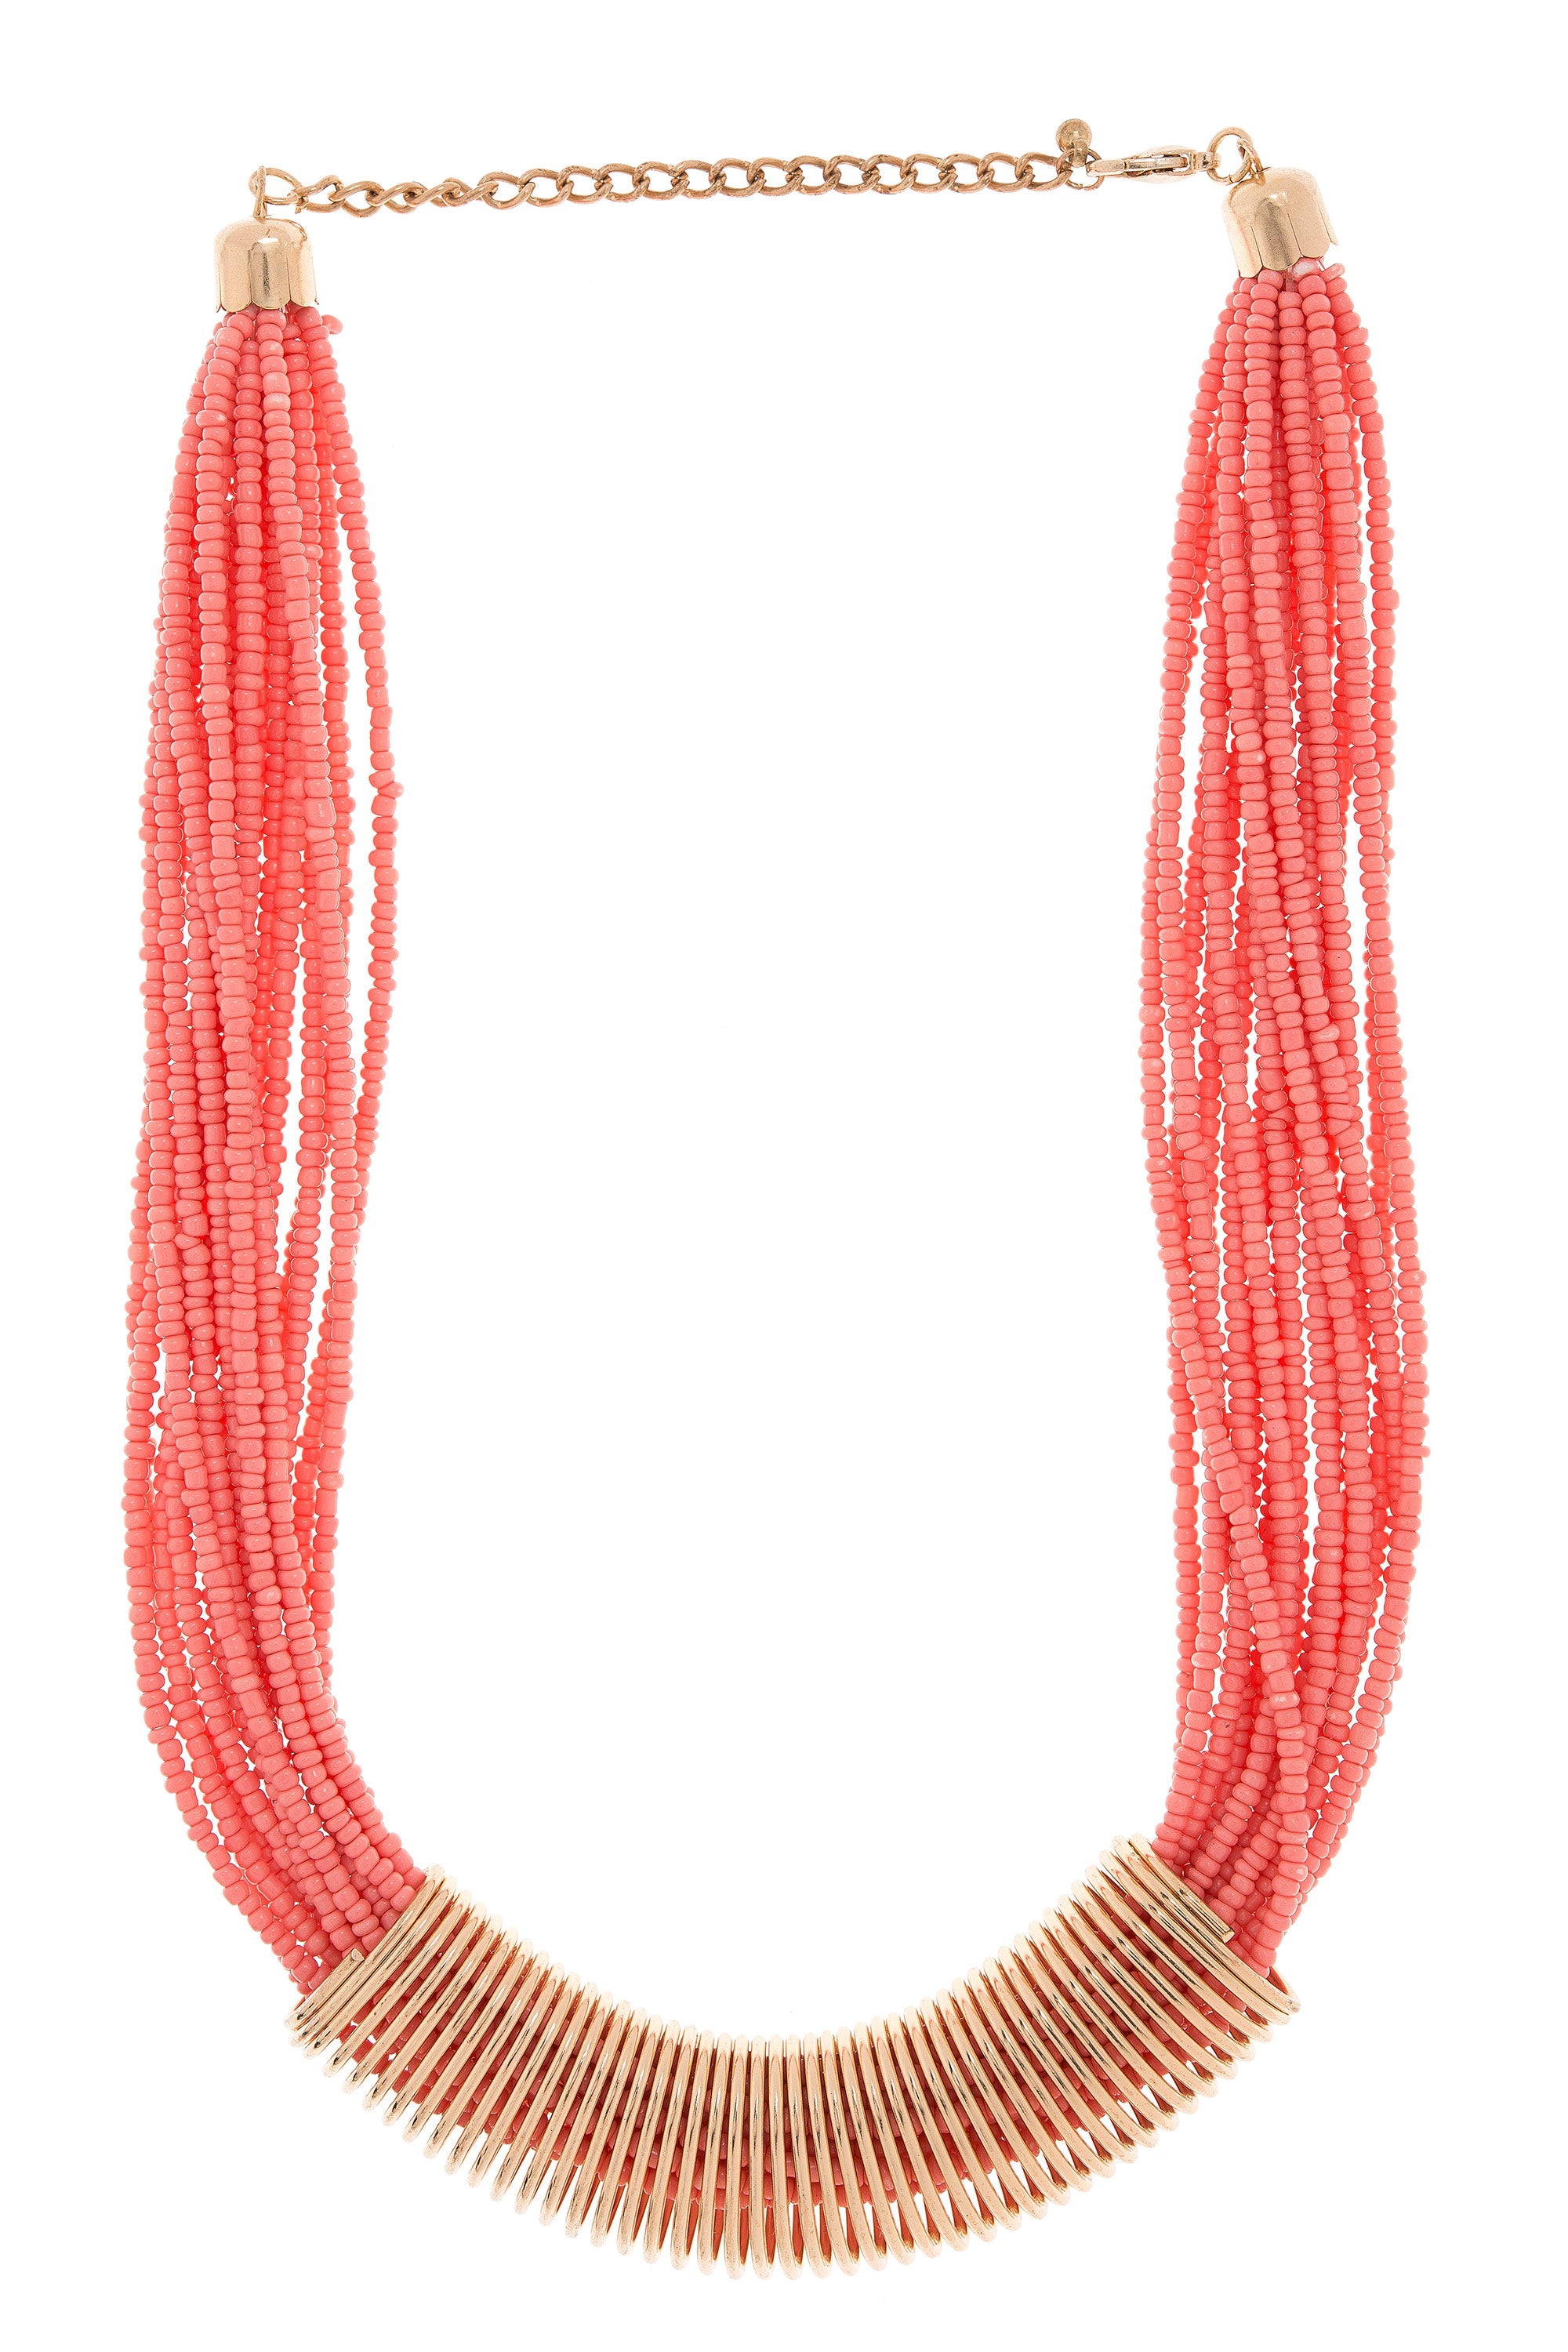 Type 3 Bound Beads Necklace